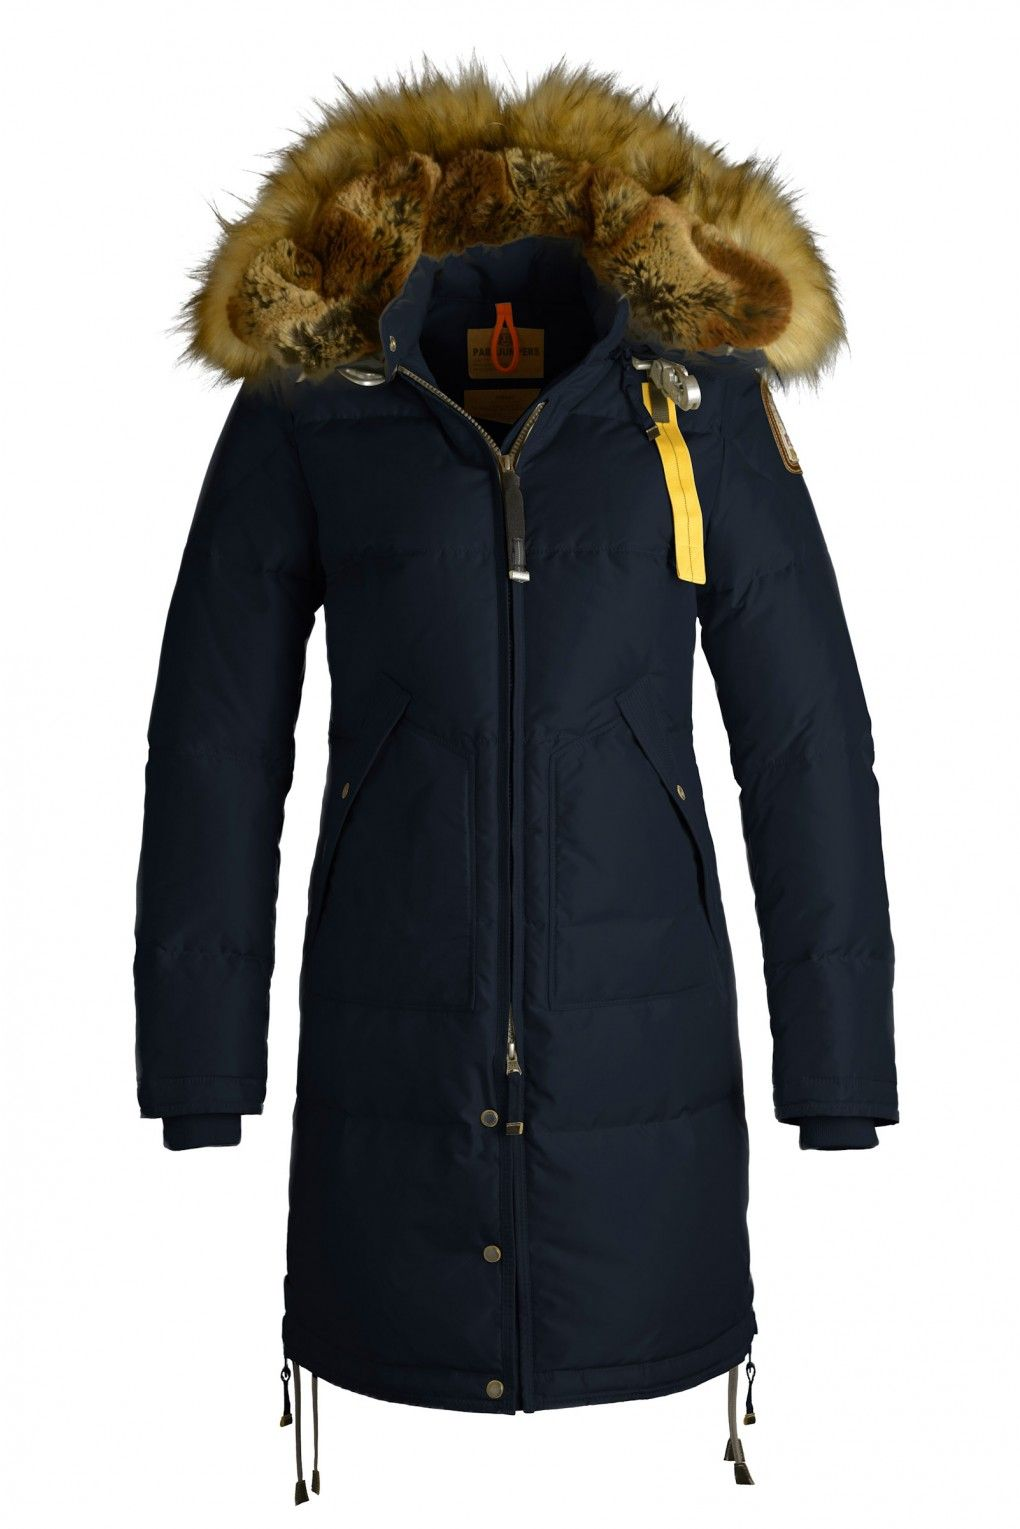 parajumpers women kodiak blue; long bear eco woman masterpiece eco outerwear woman parajumpers